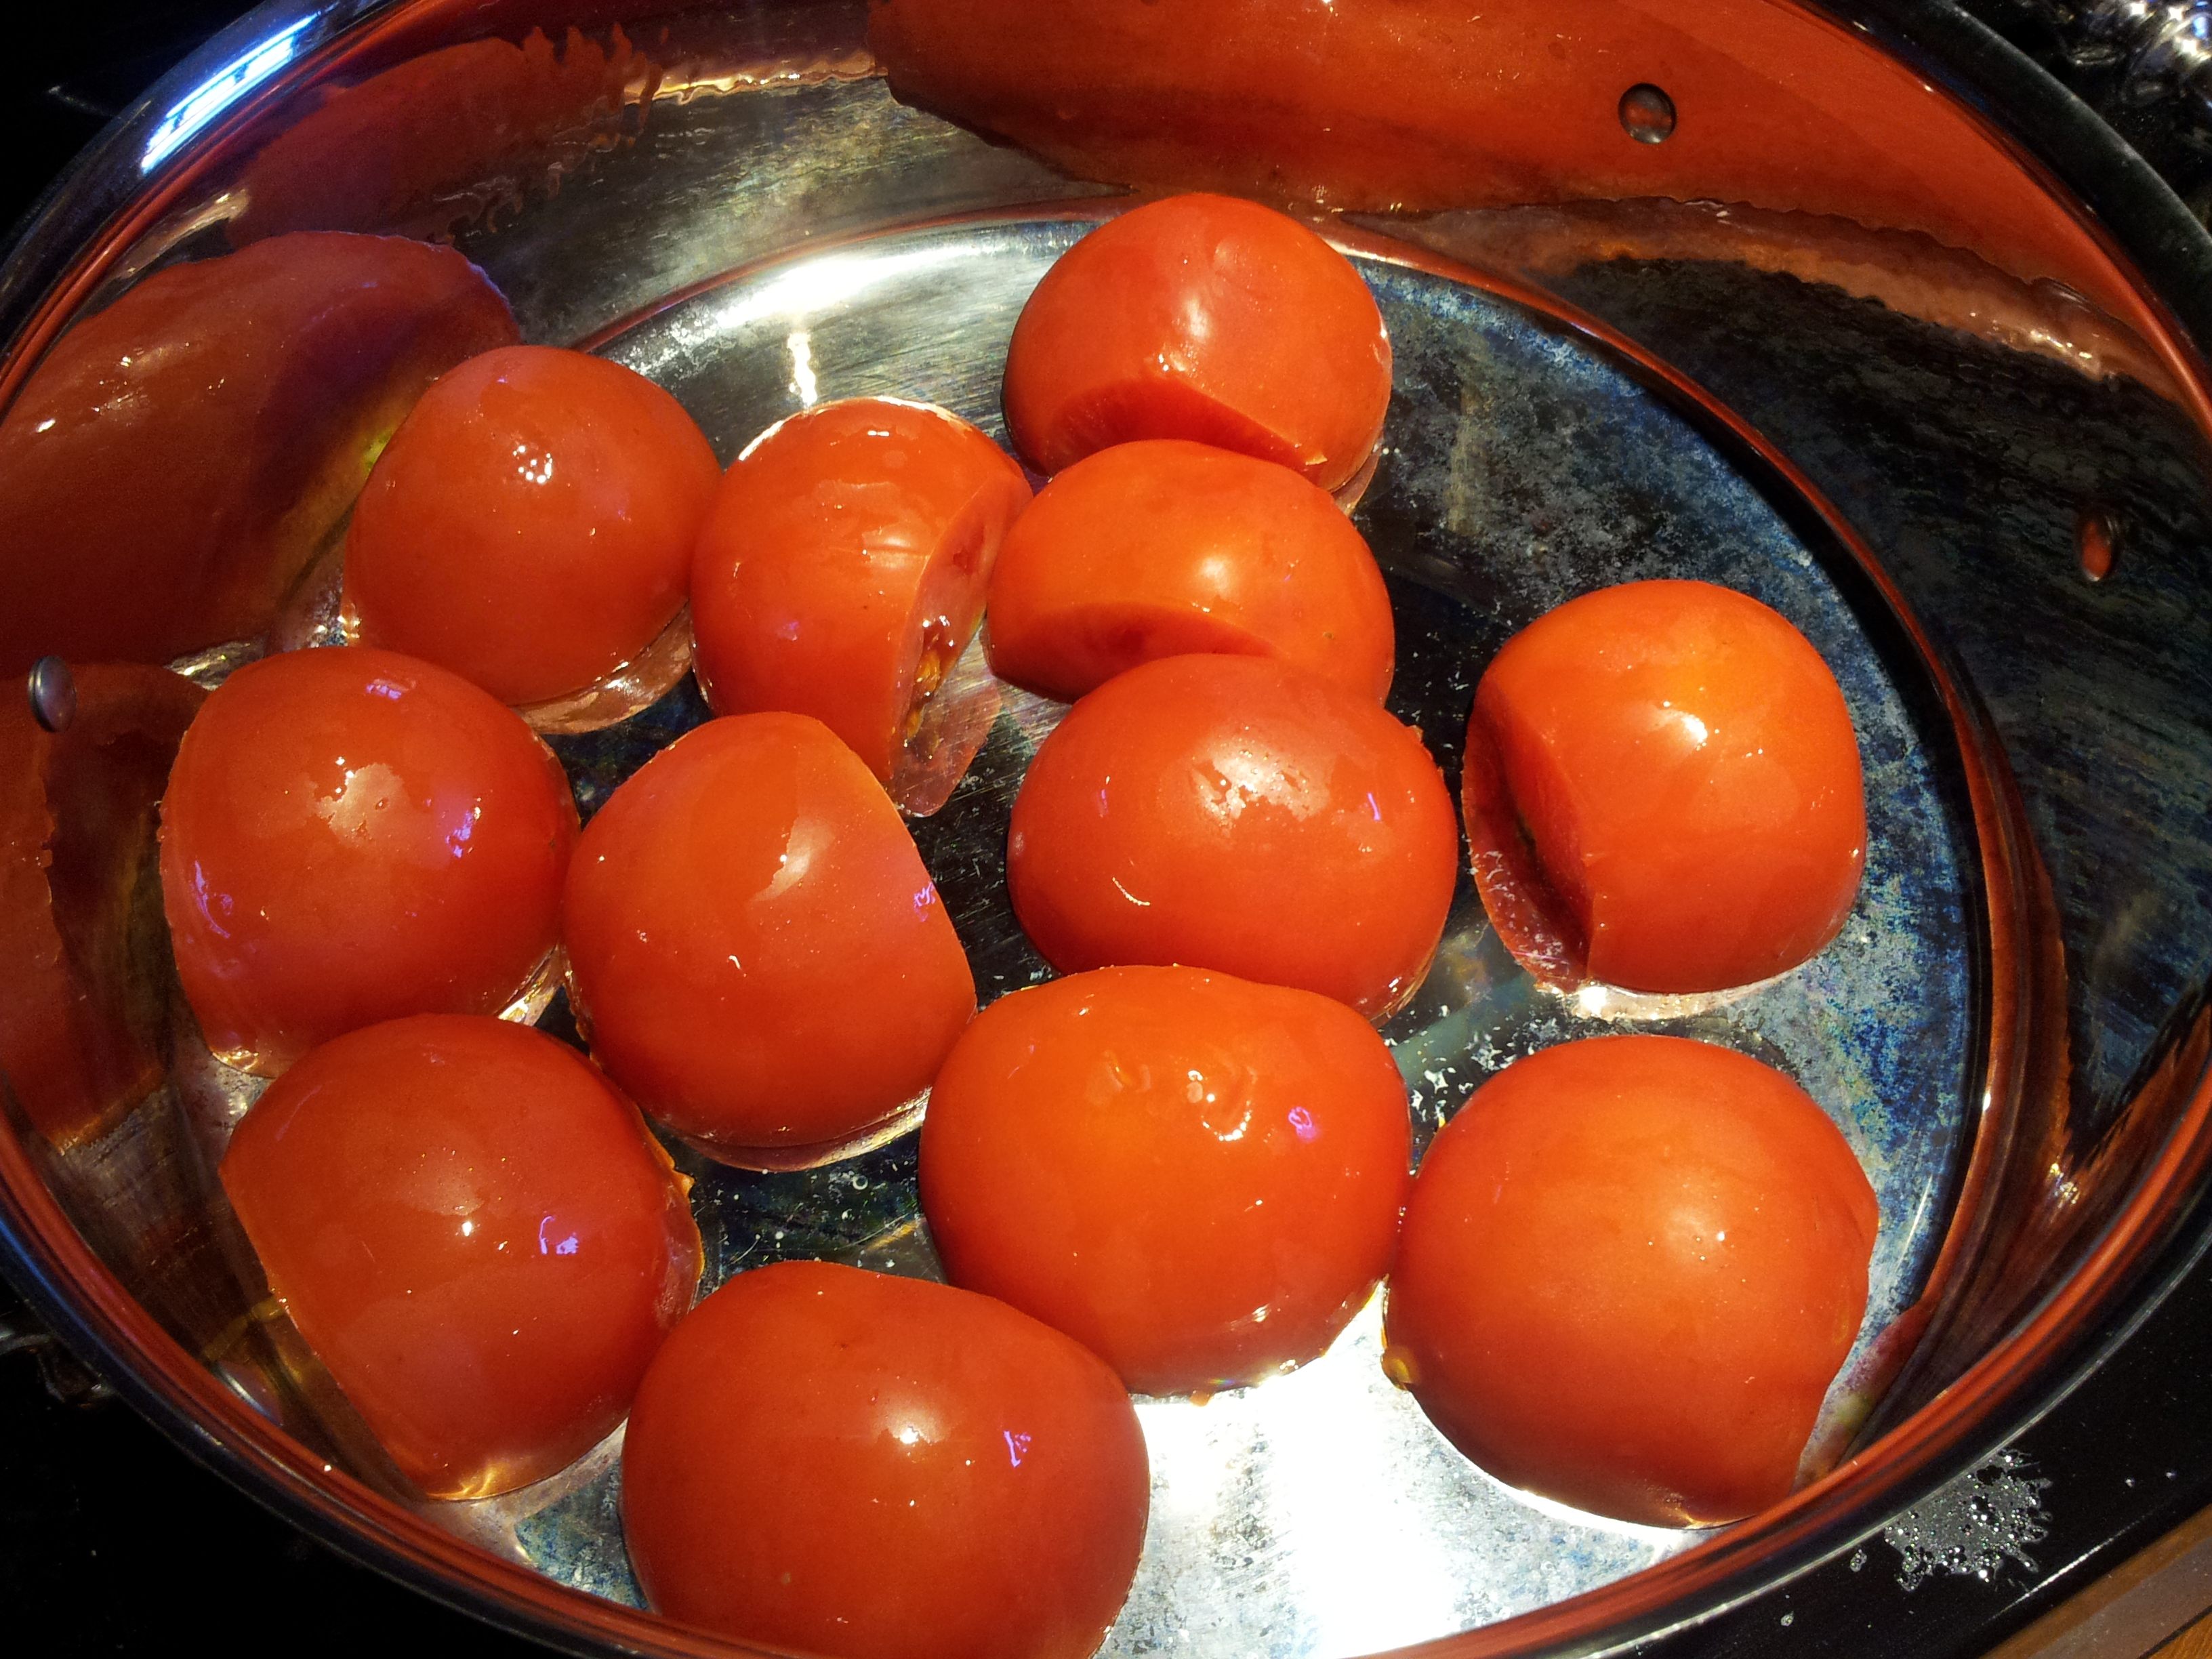 Arranging Tomatoes for Tomato and Cream Sauce in Pan